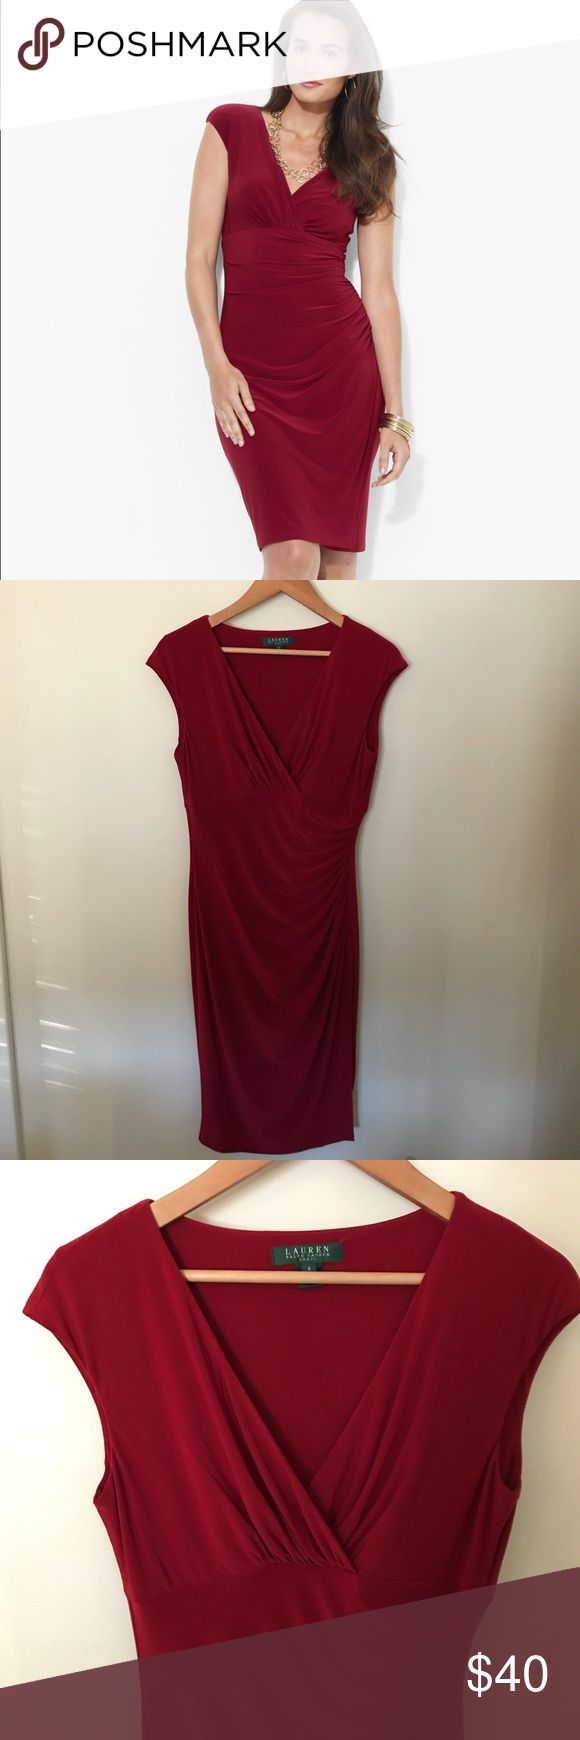 LAUREN Ralph Lauren Faux Wrap, Dark Red LAUREN Ralph Lauren dark red elegant jersey dress. Flattering style & fit with criss-cross neckline with horizontal seam below it, ruching on one side in front with faux wrap. This dress hangs beautifully. Excellent condition, no flaws. All clothes in my listings are clean & I also freshly wash ea before packaging unless NWT or NWOT. Posh Ambassador, 5⭐️avg rated, ship quickly! Lauren Ralph Lauren Dresses